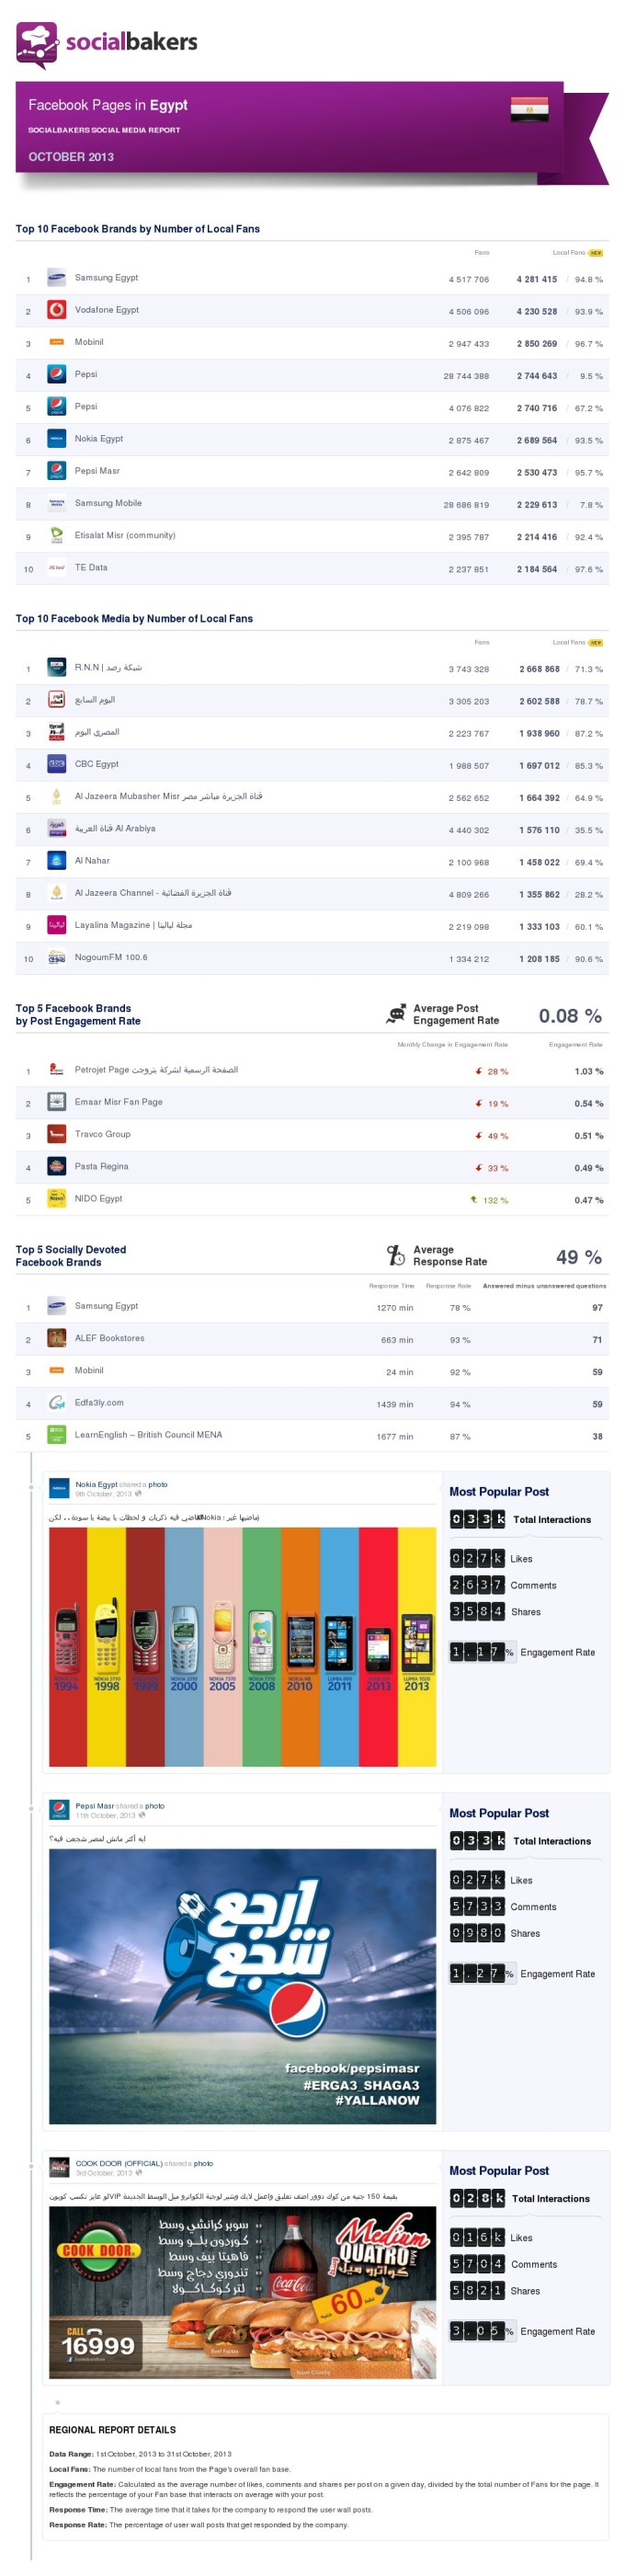 facebook statistics Egypt Oct. 2013